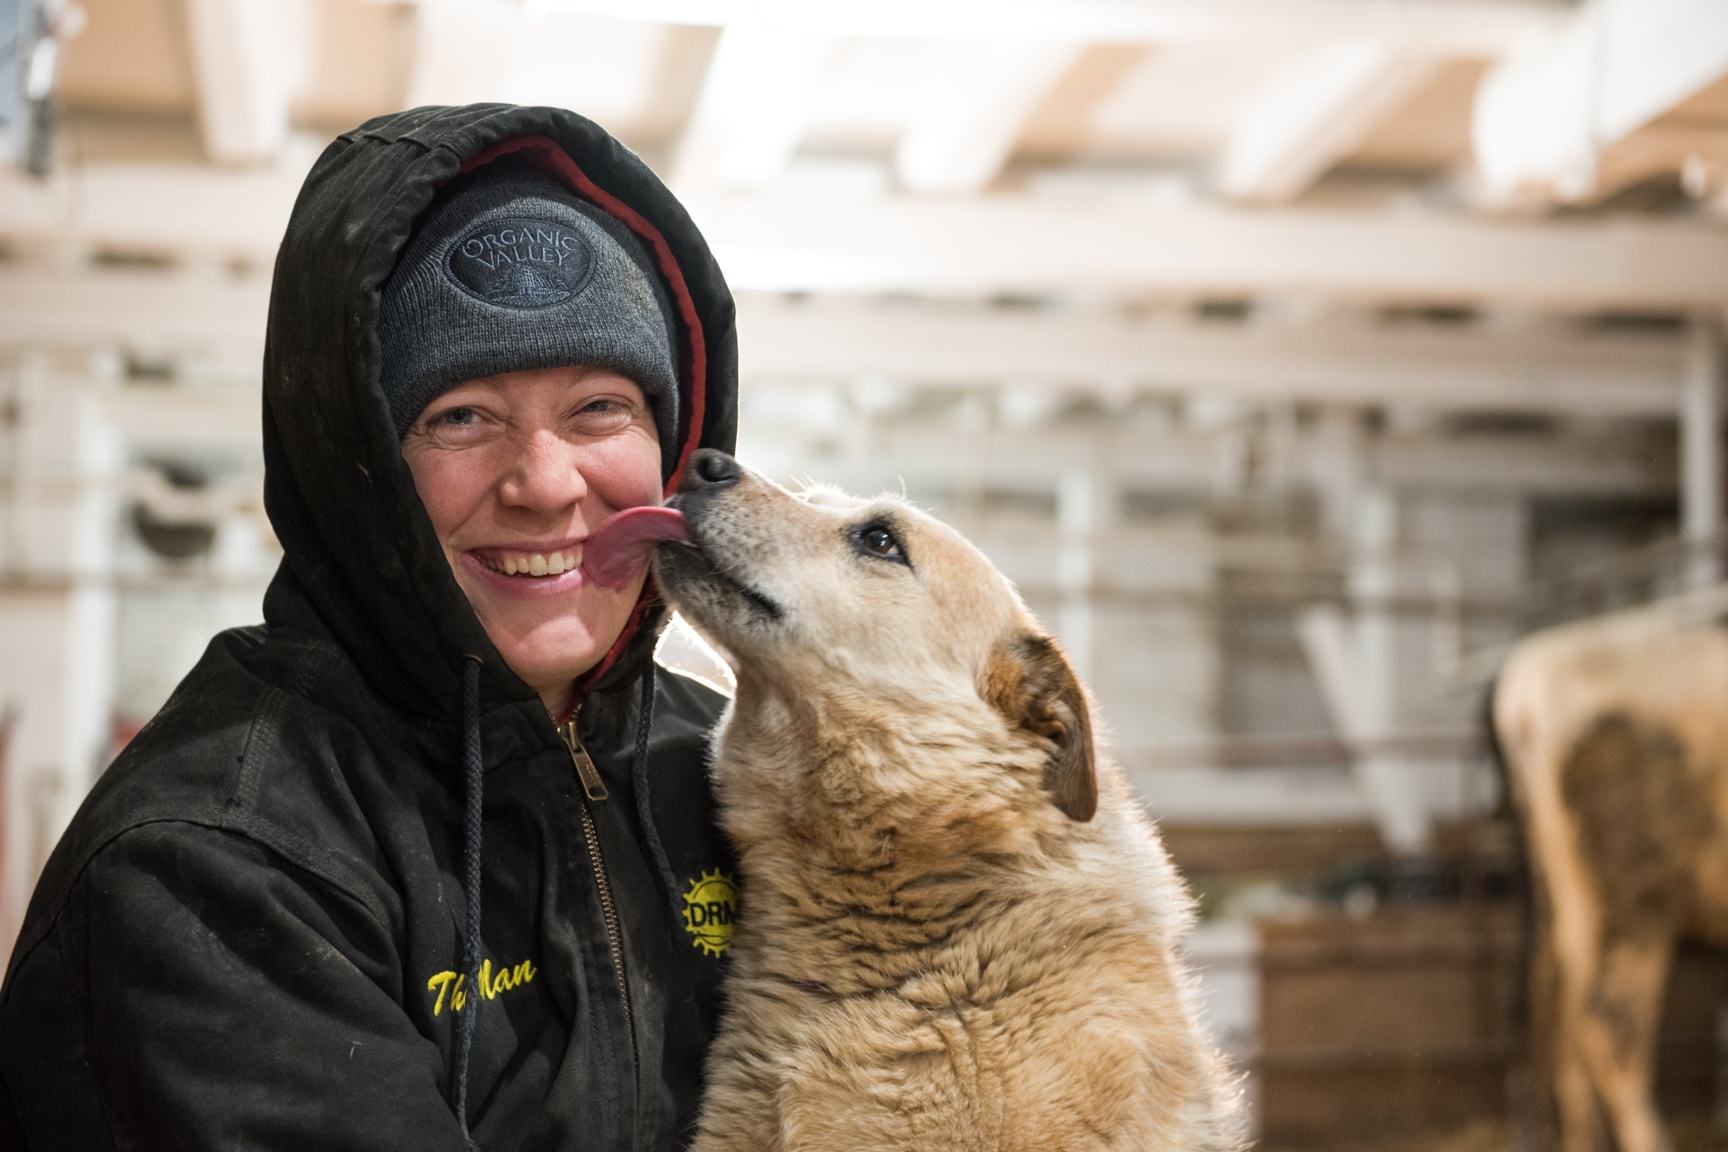 In the milking barn, Amy smiles while her dog licks her face.